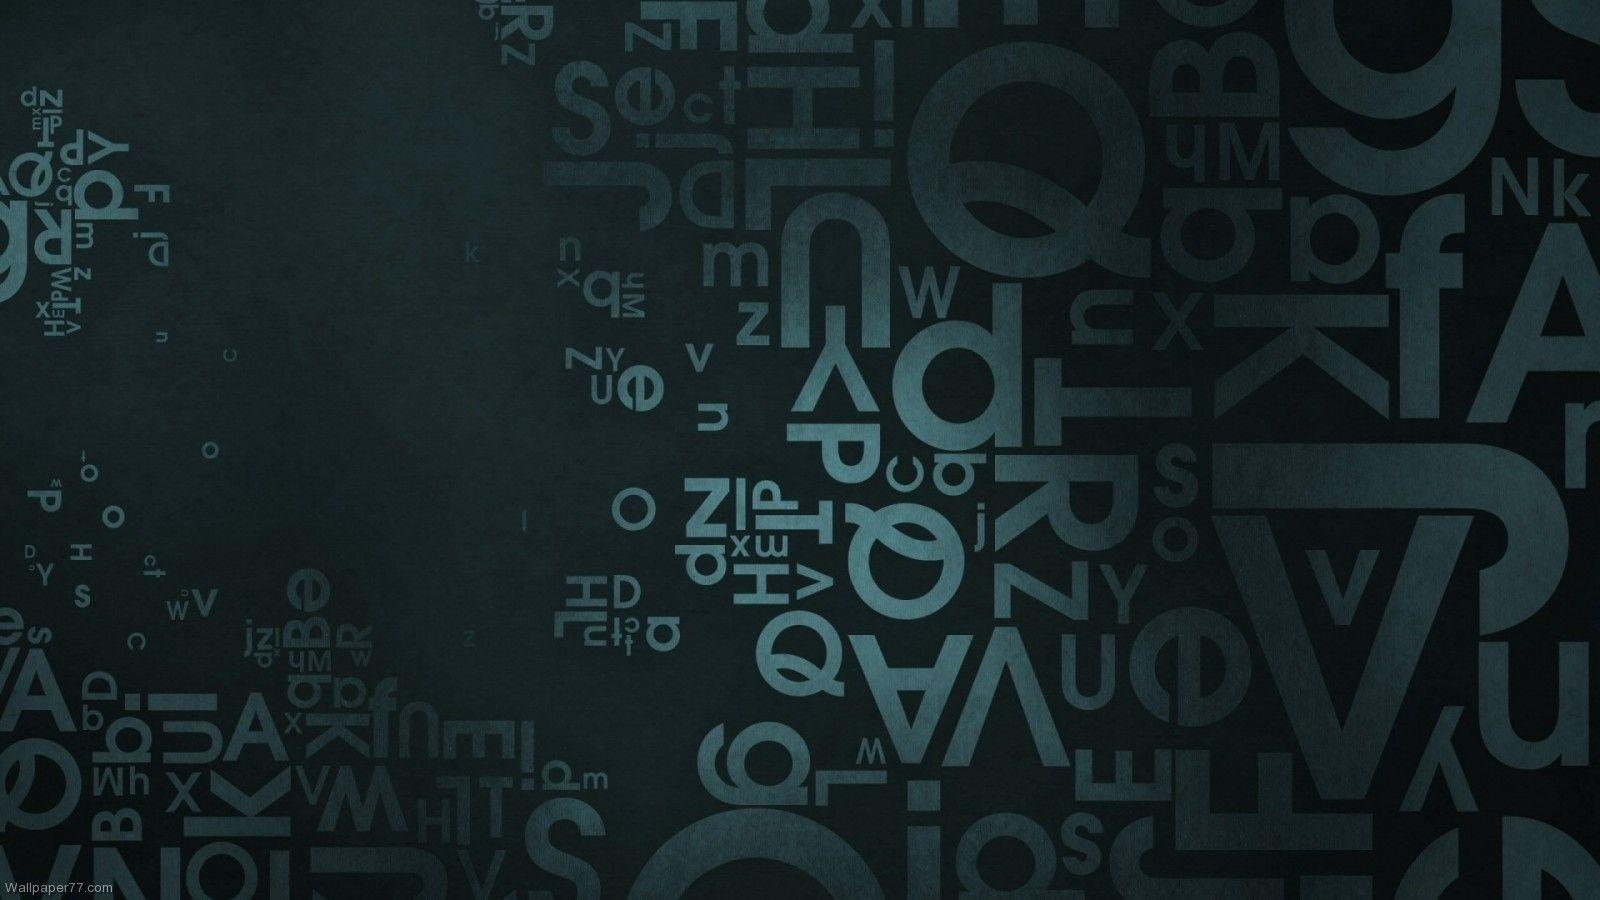 Letters wallpapers wallpaper cave 100 quality letter hd wallpapers kkh99kkh hqfx wallpapers thecheapjerseys Images